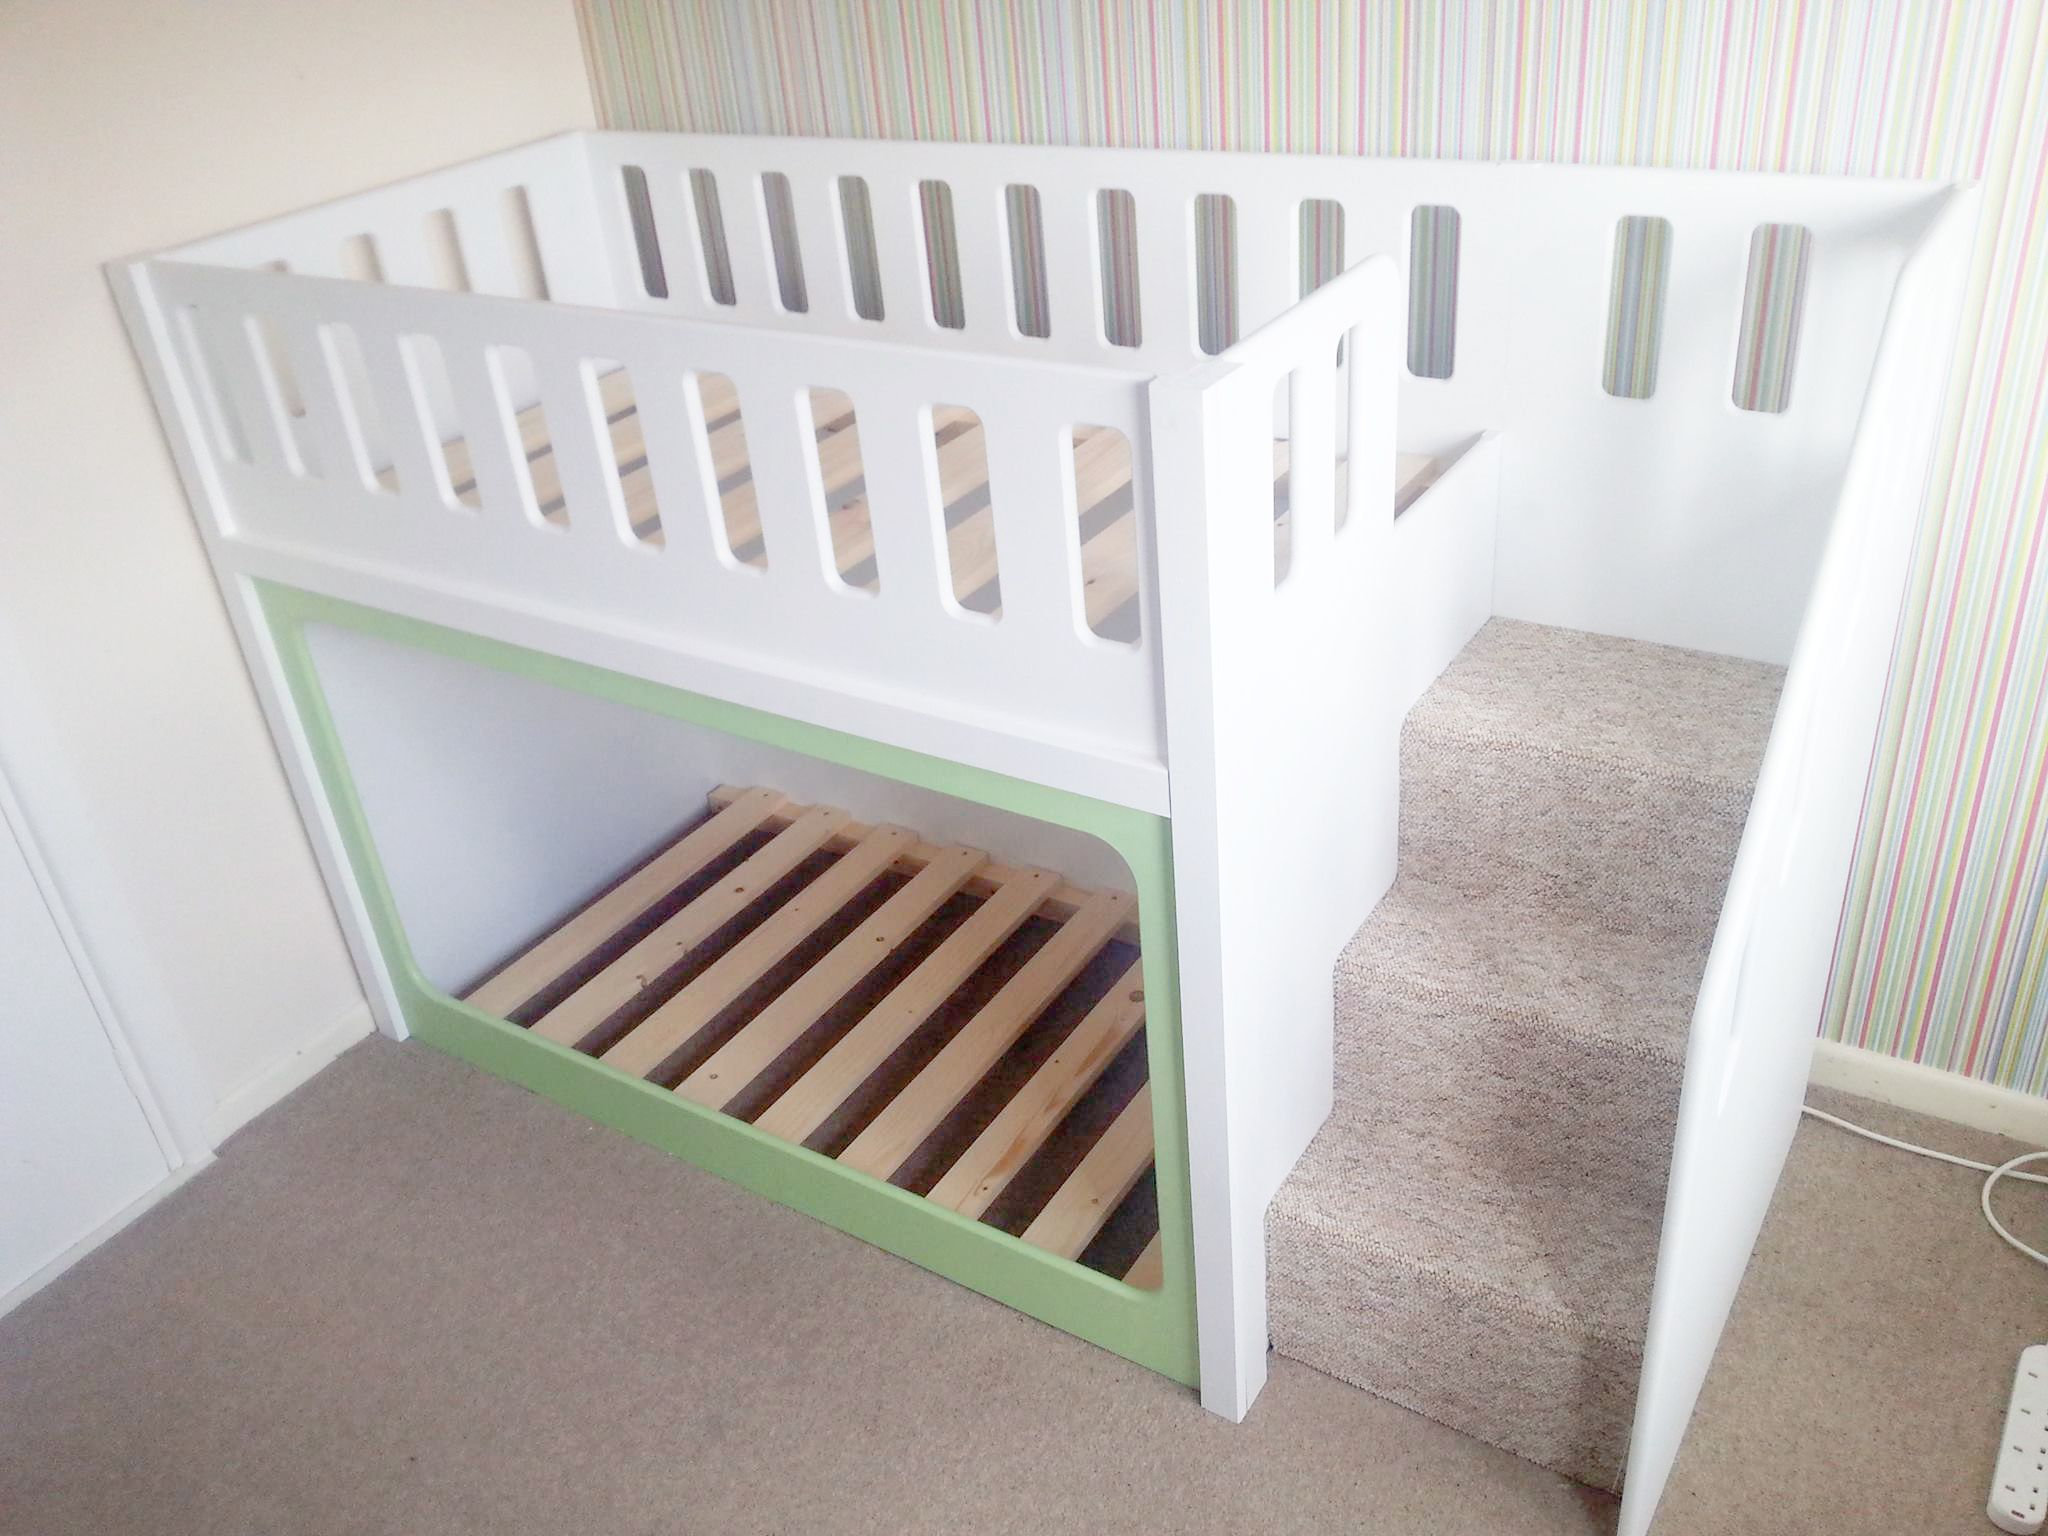 Low Bunk Beds For Toddlers Style Toddler Ideas Image Of